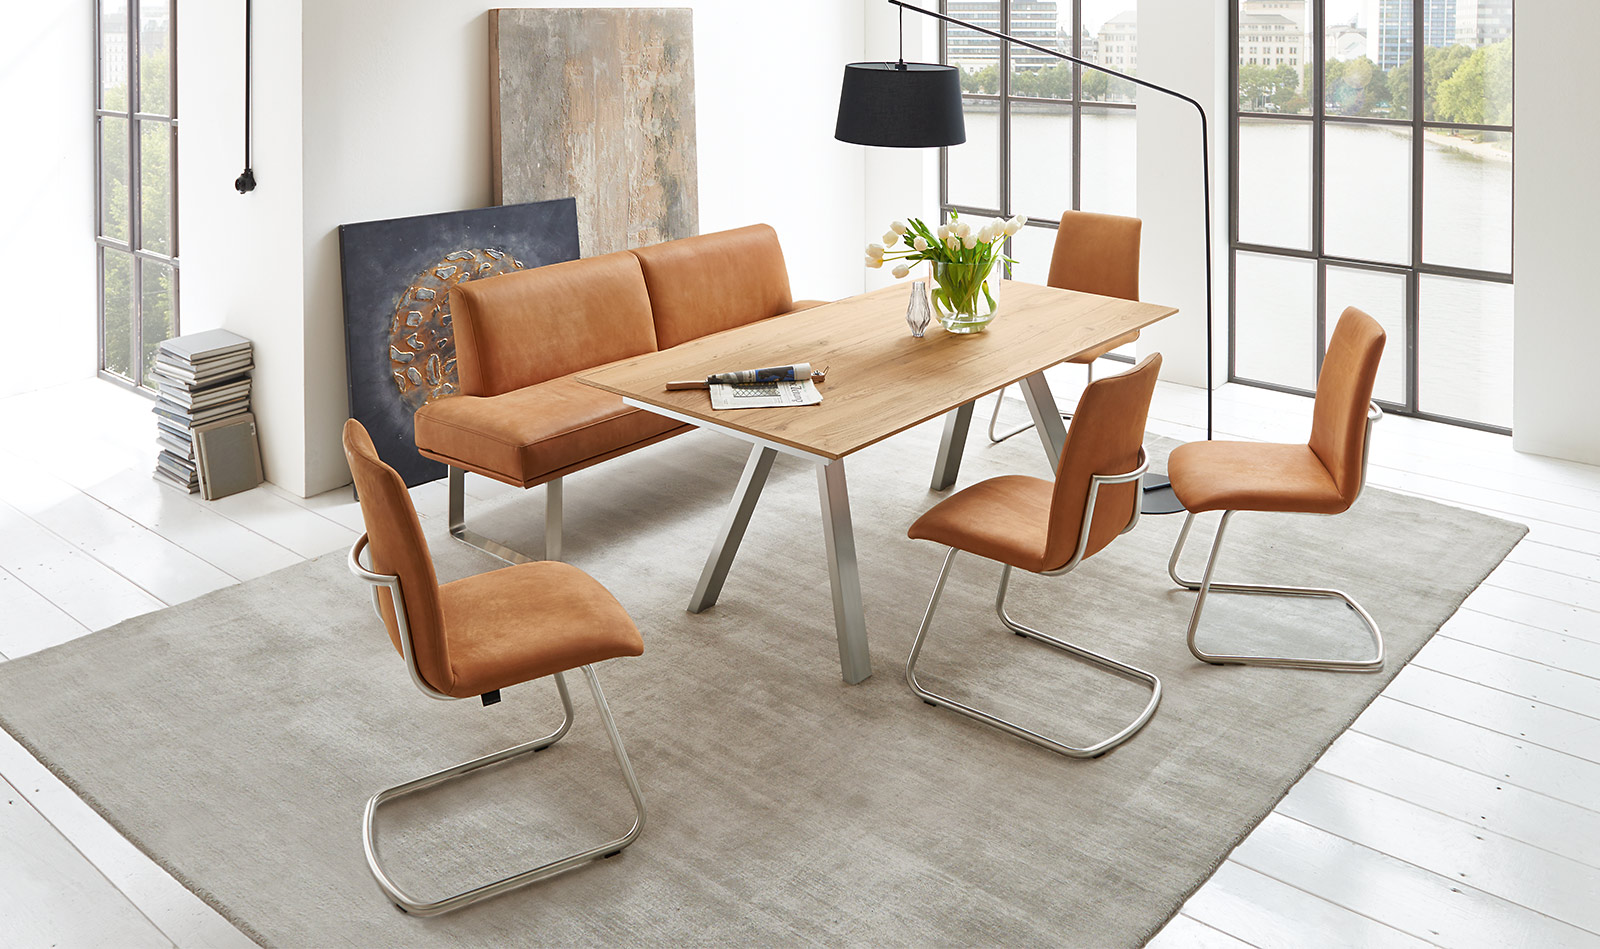 Dining Table 1592 | Chair 2381 | Bench P550 Amazing Ideas